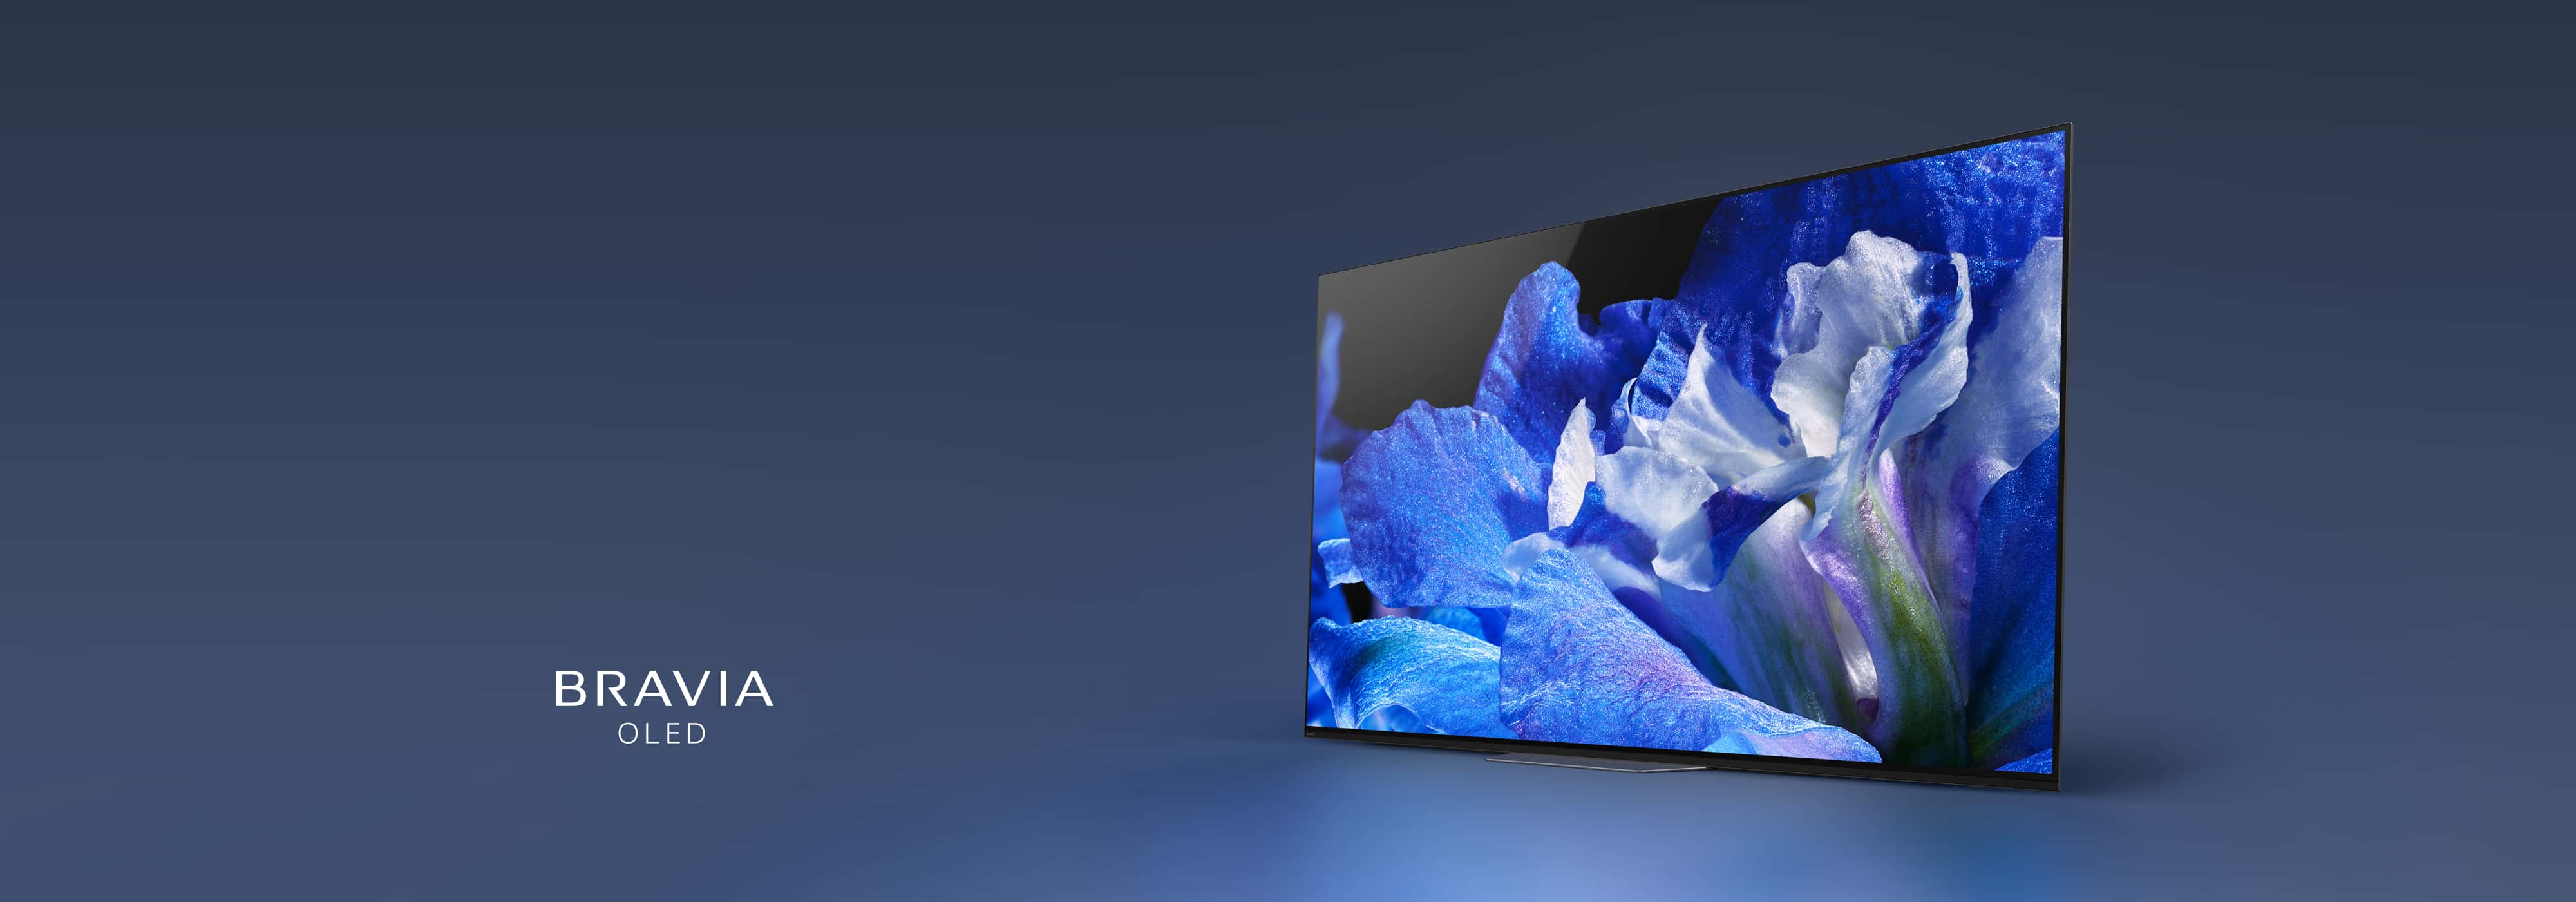 A8F OLED Television